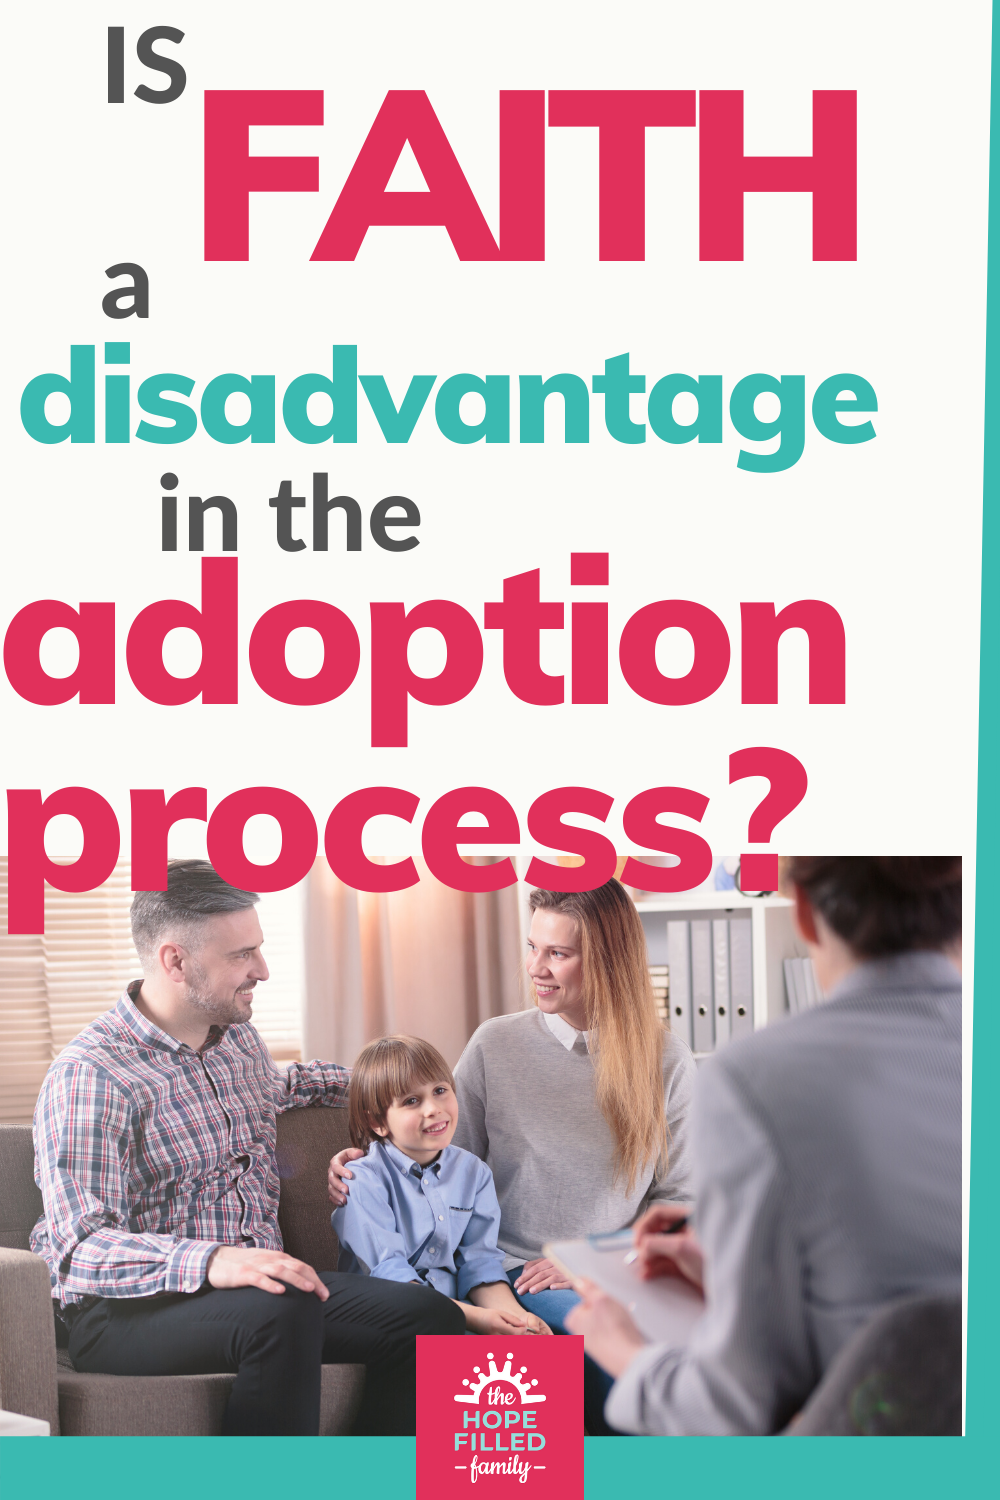 Is faith a disadvantage in the adoption process? Will the adoption agency refuse me because I'm a Christian?